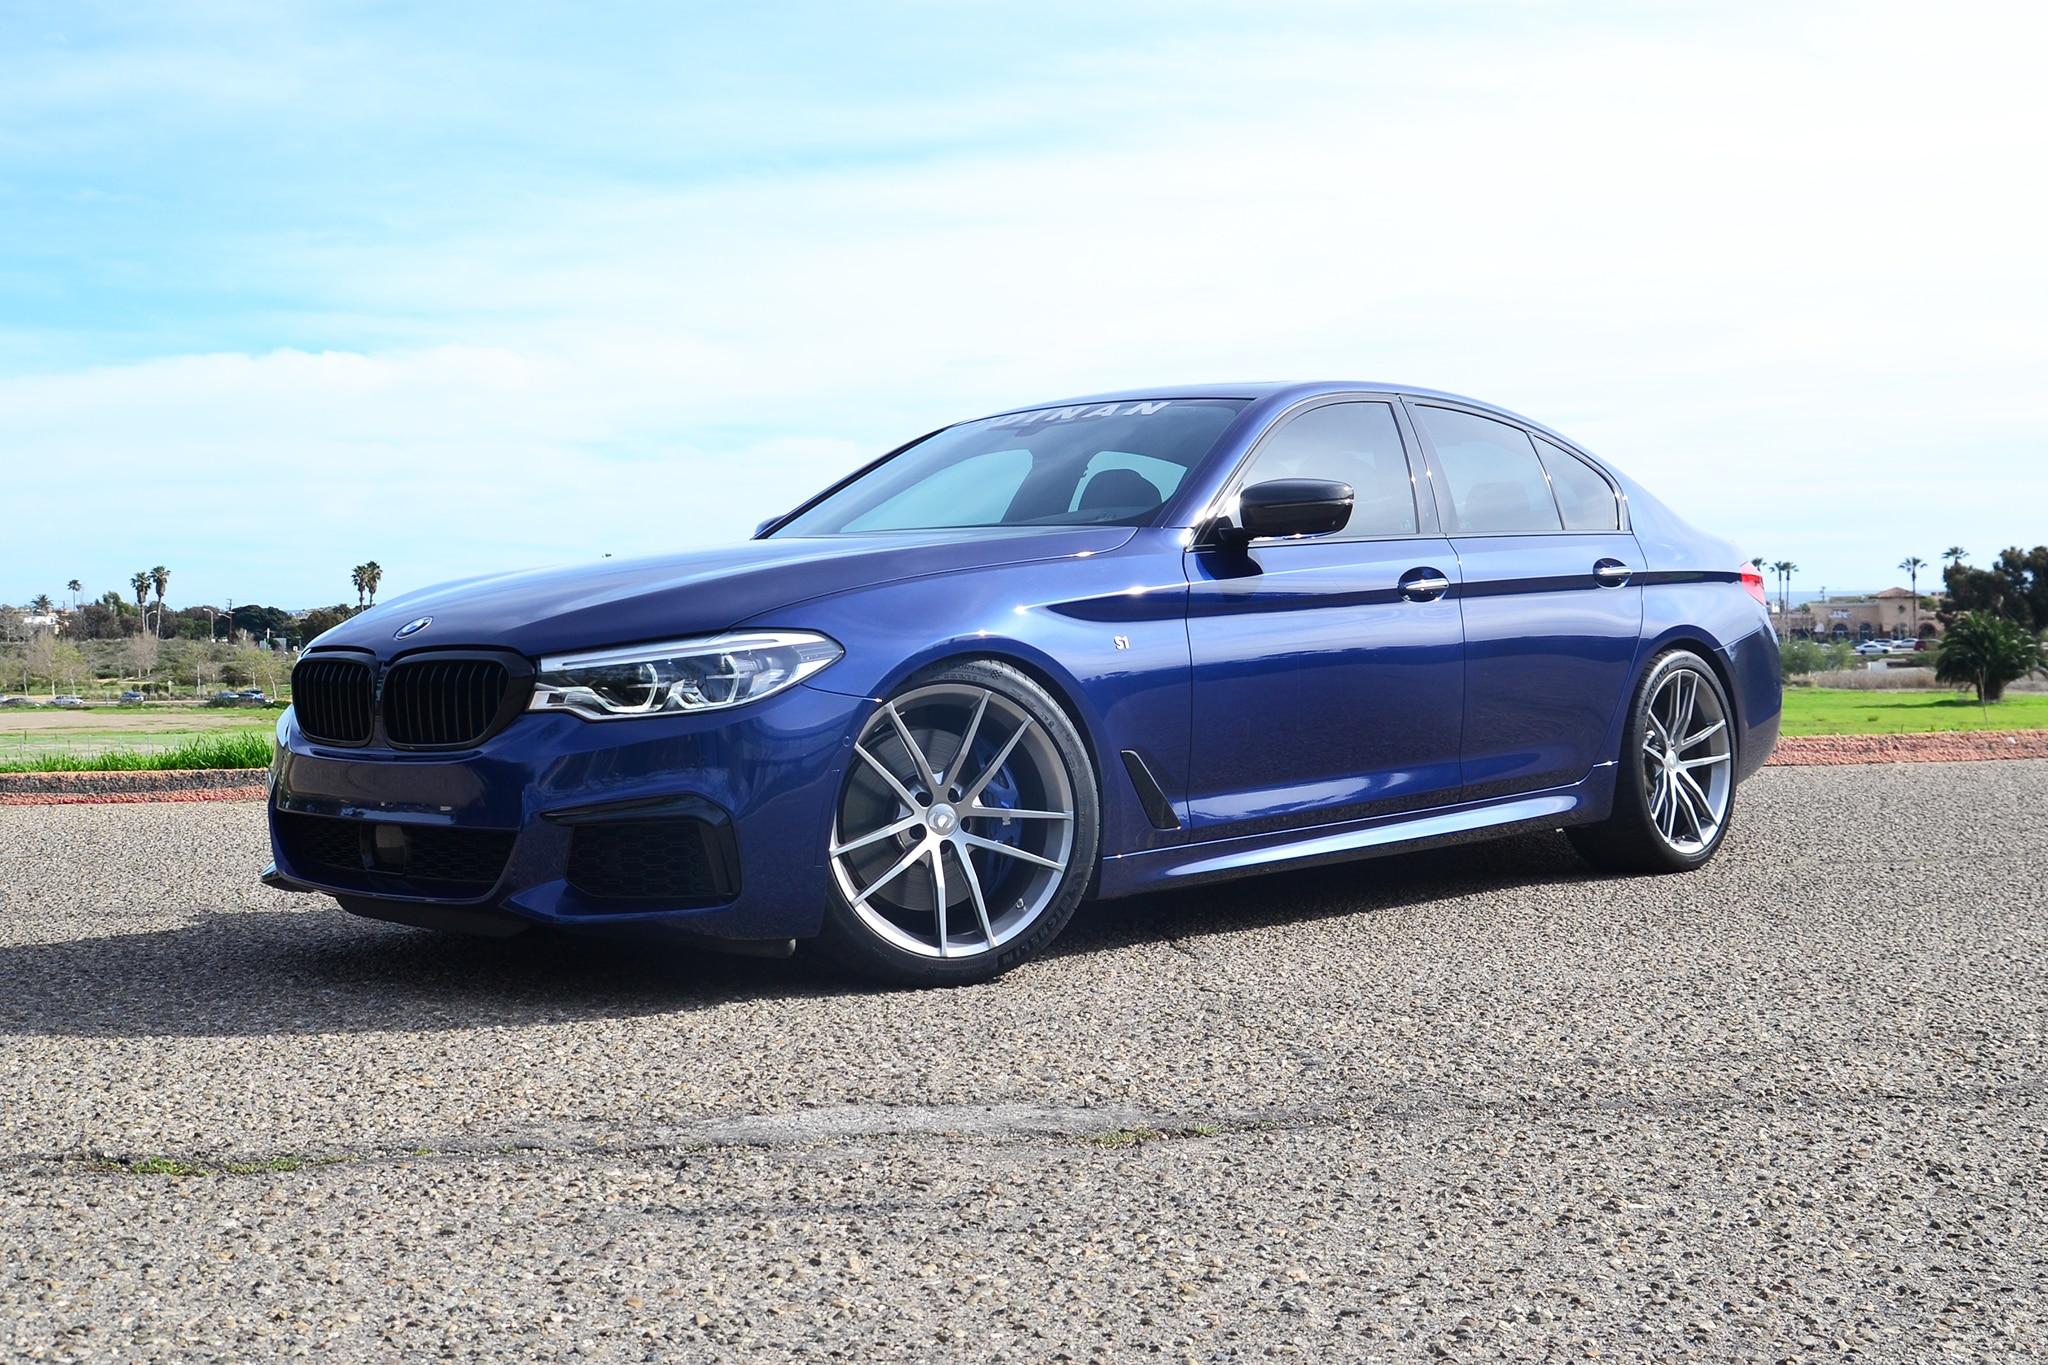 2018 Dinan M550i S1 Front Three Quarters